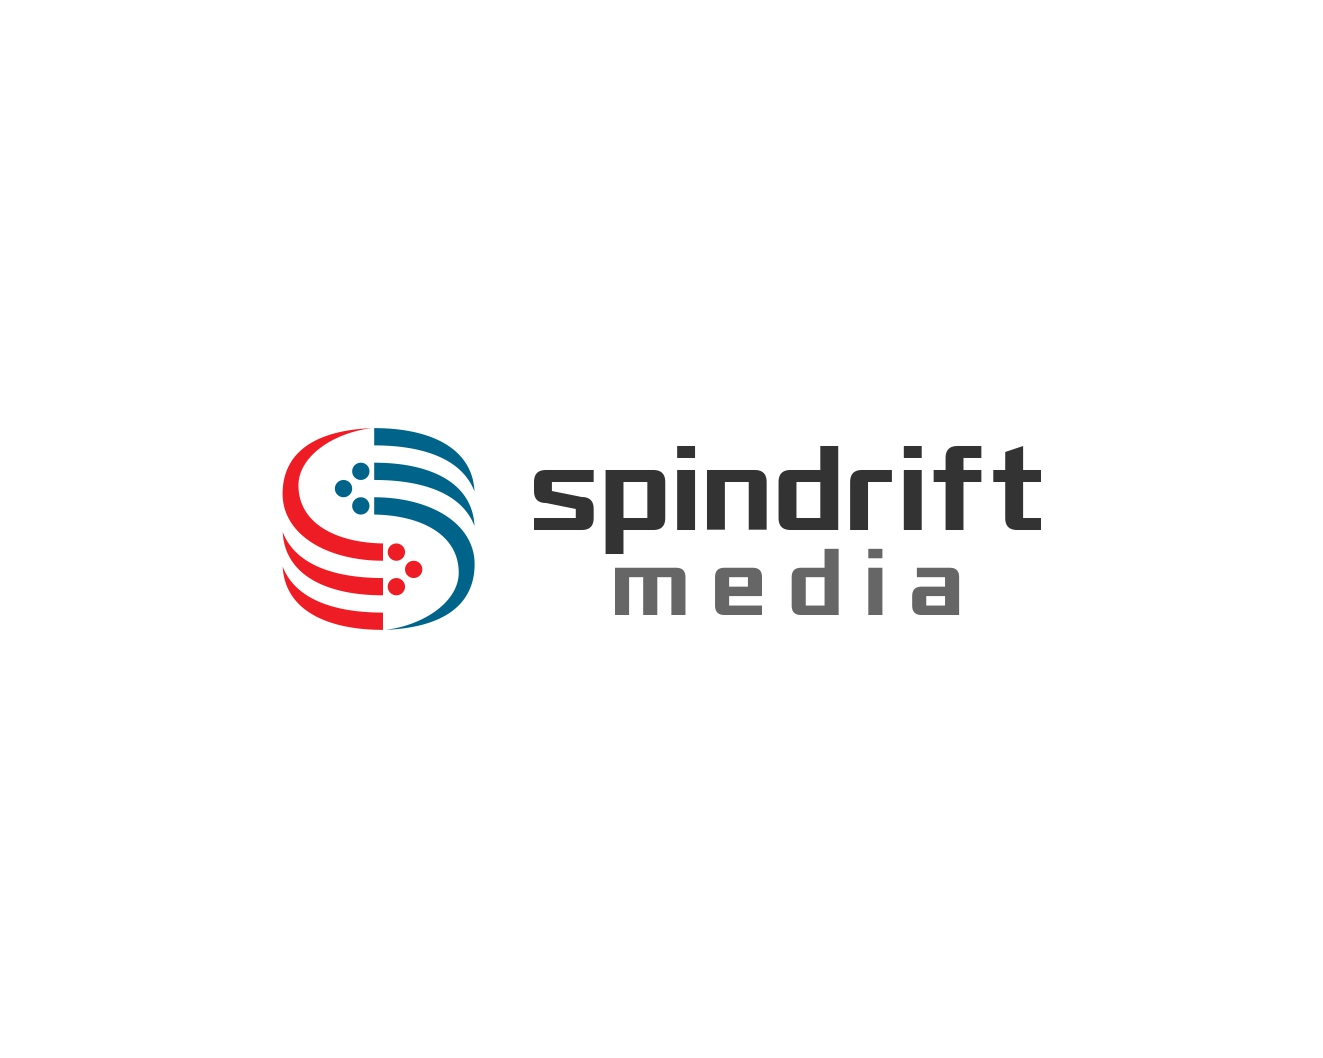 Logo Design by Rares.Andrei - Entry No. 20 in the Logo Design Contest Inspiring Logo Design for Spindrift Media.